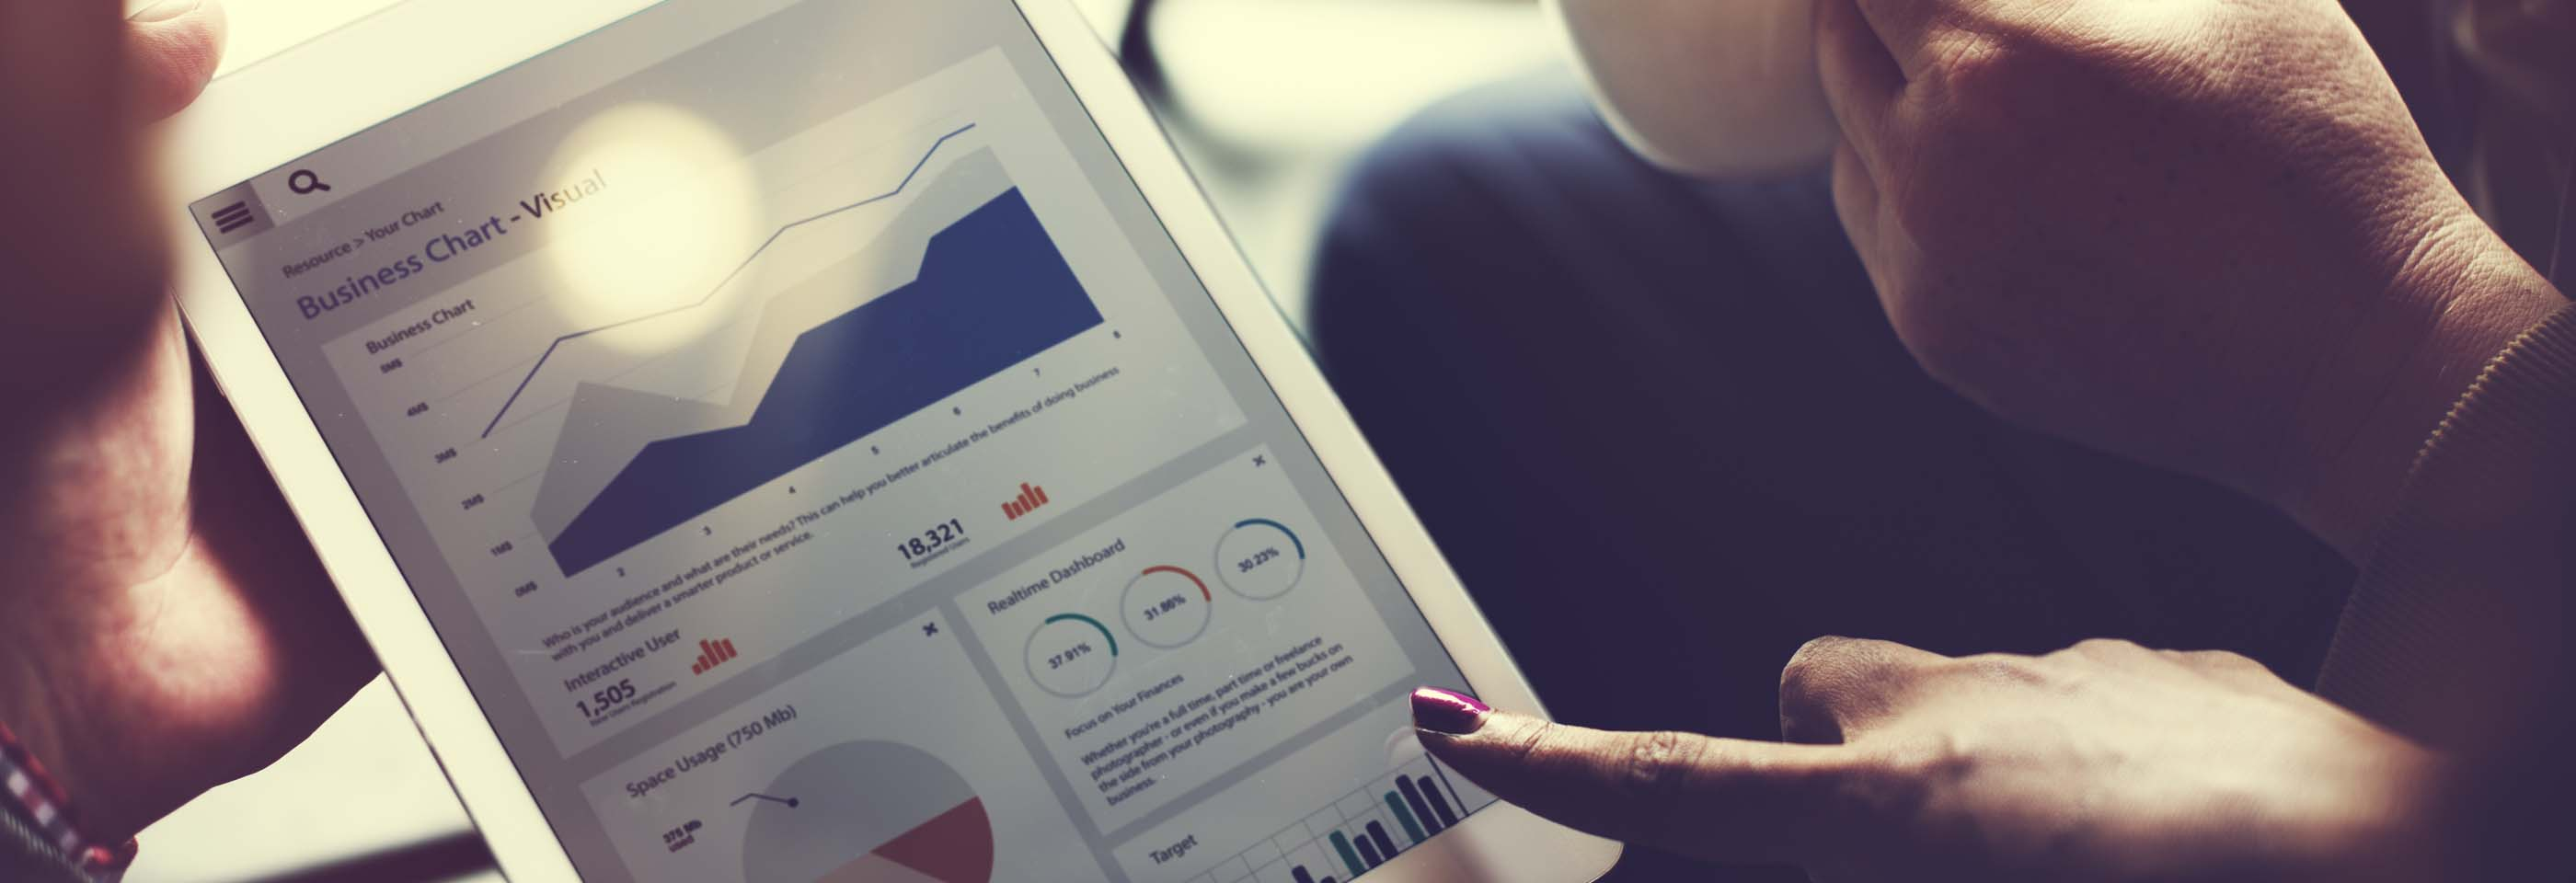 What is the growth of Digital Marketing Industry?